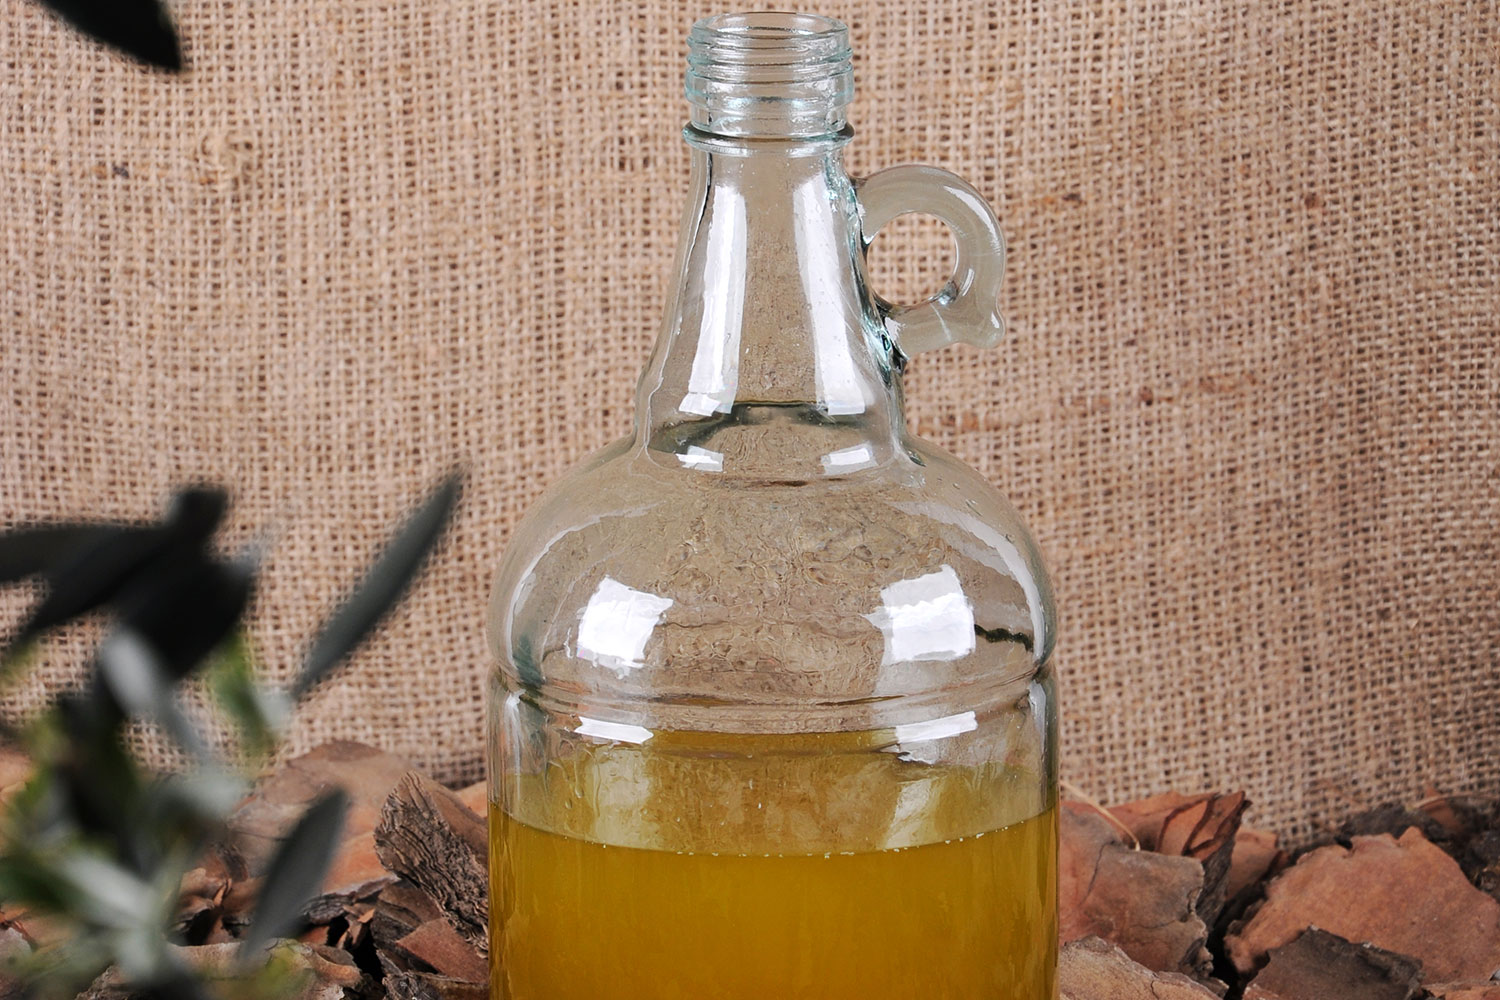 gallons-glass-olive-oil-organic-food-container-flint-green-production